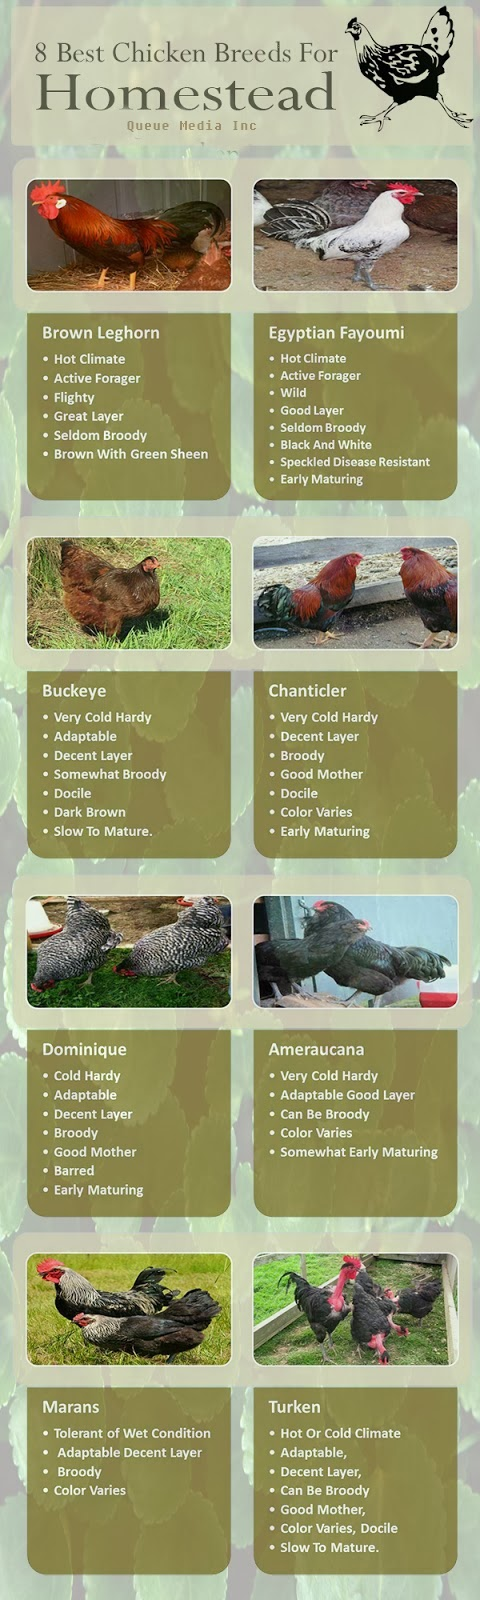 8 Best Chicken Breeds for Homestead